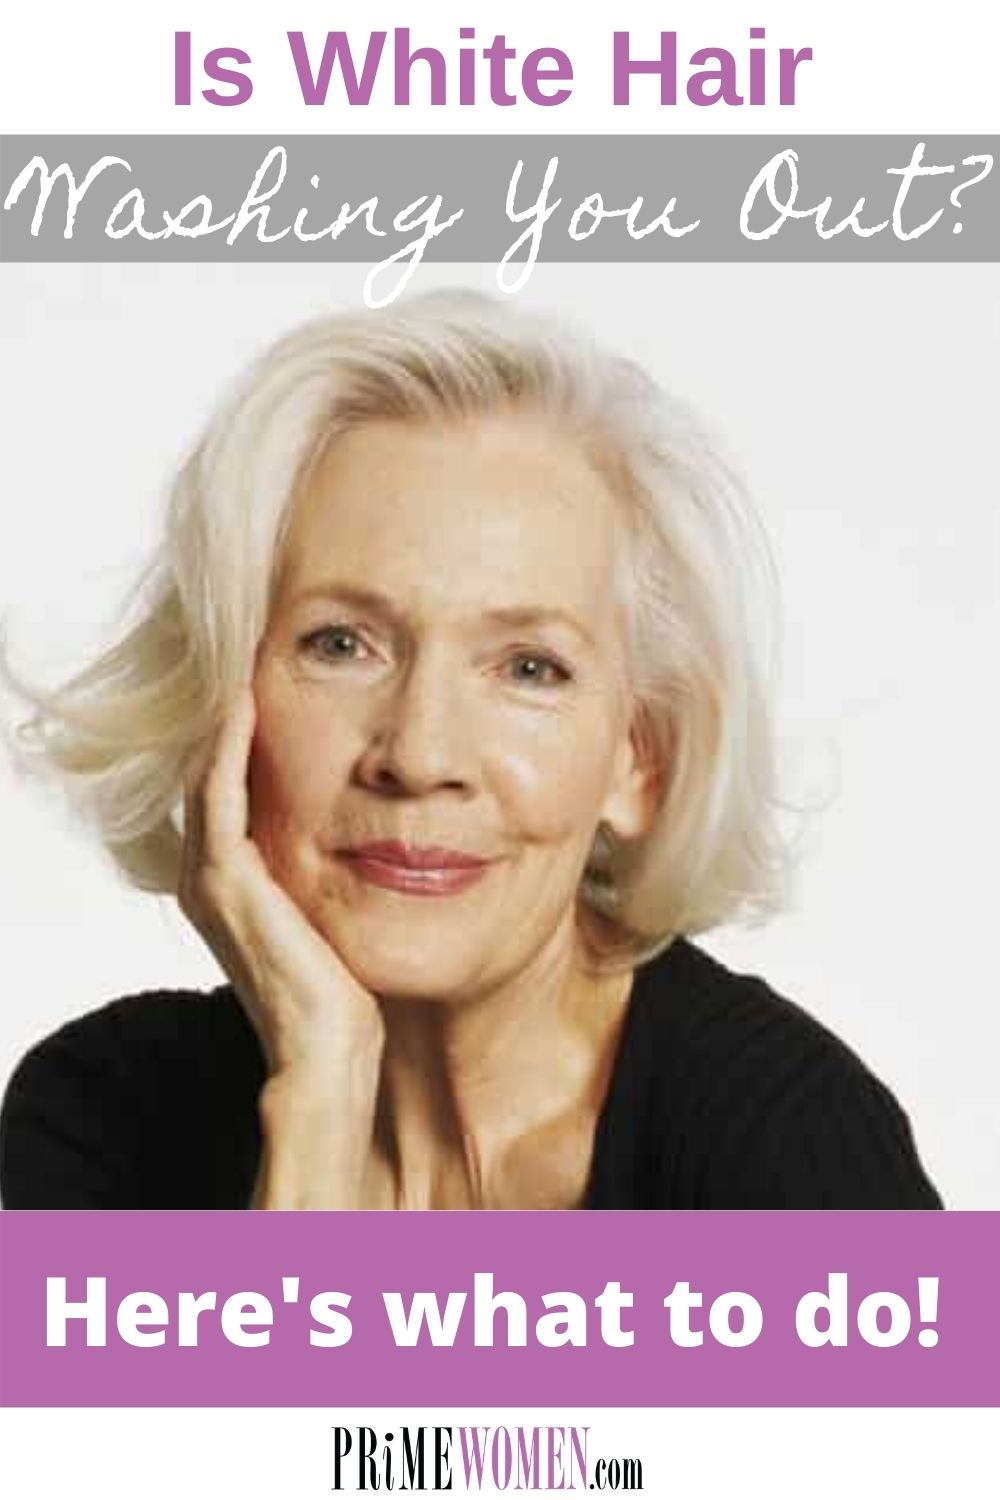 Is white hair washing you out_ Here's what you can do to fix it.